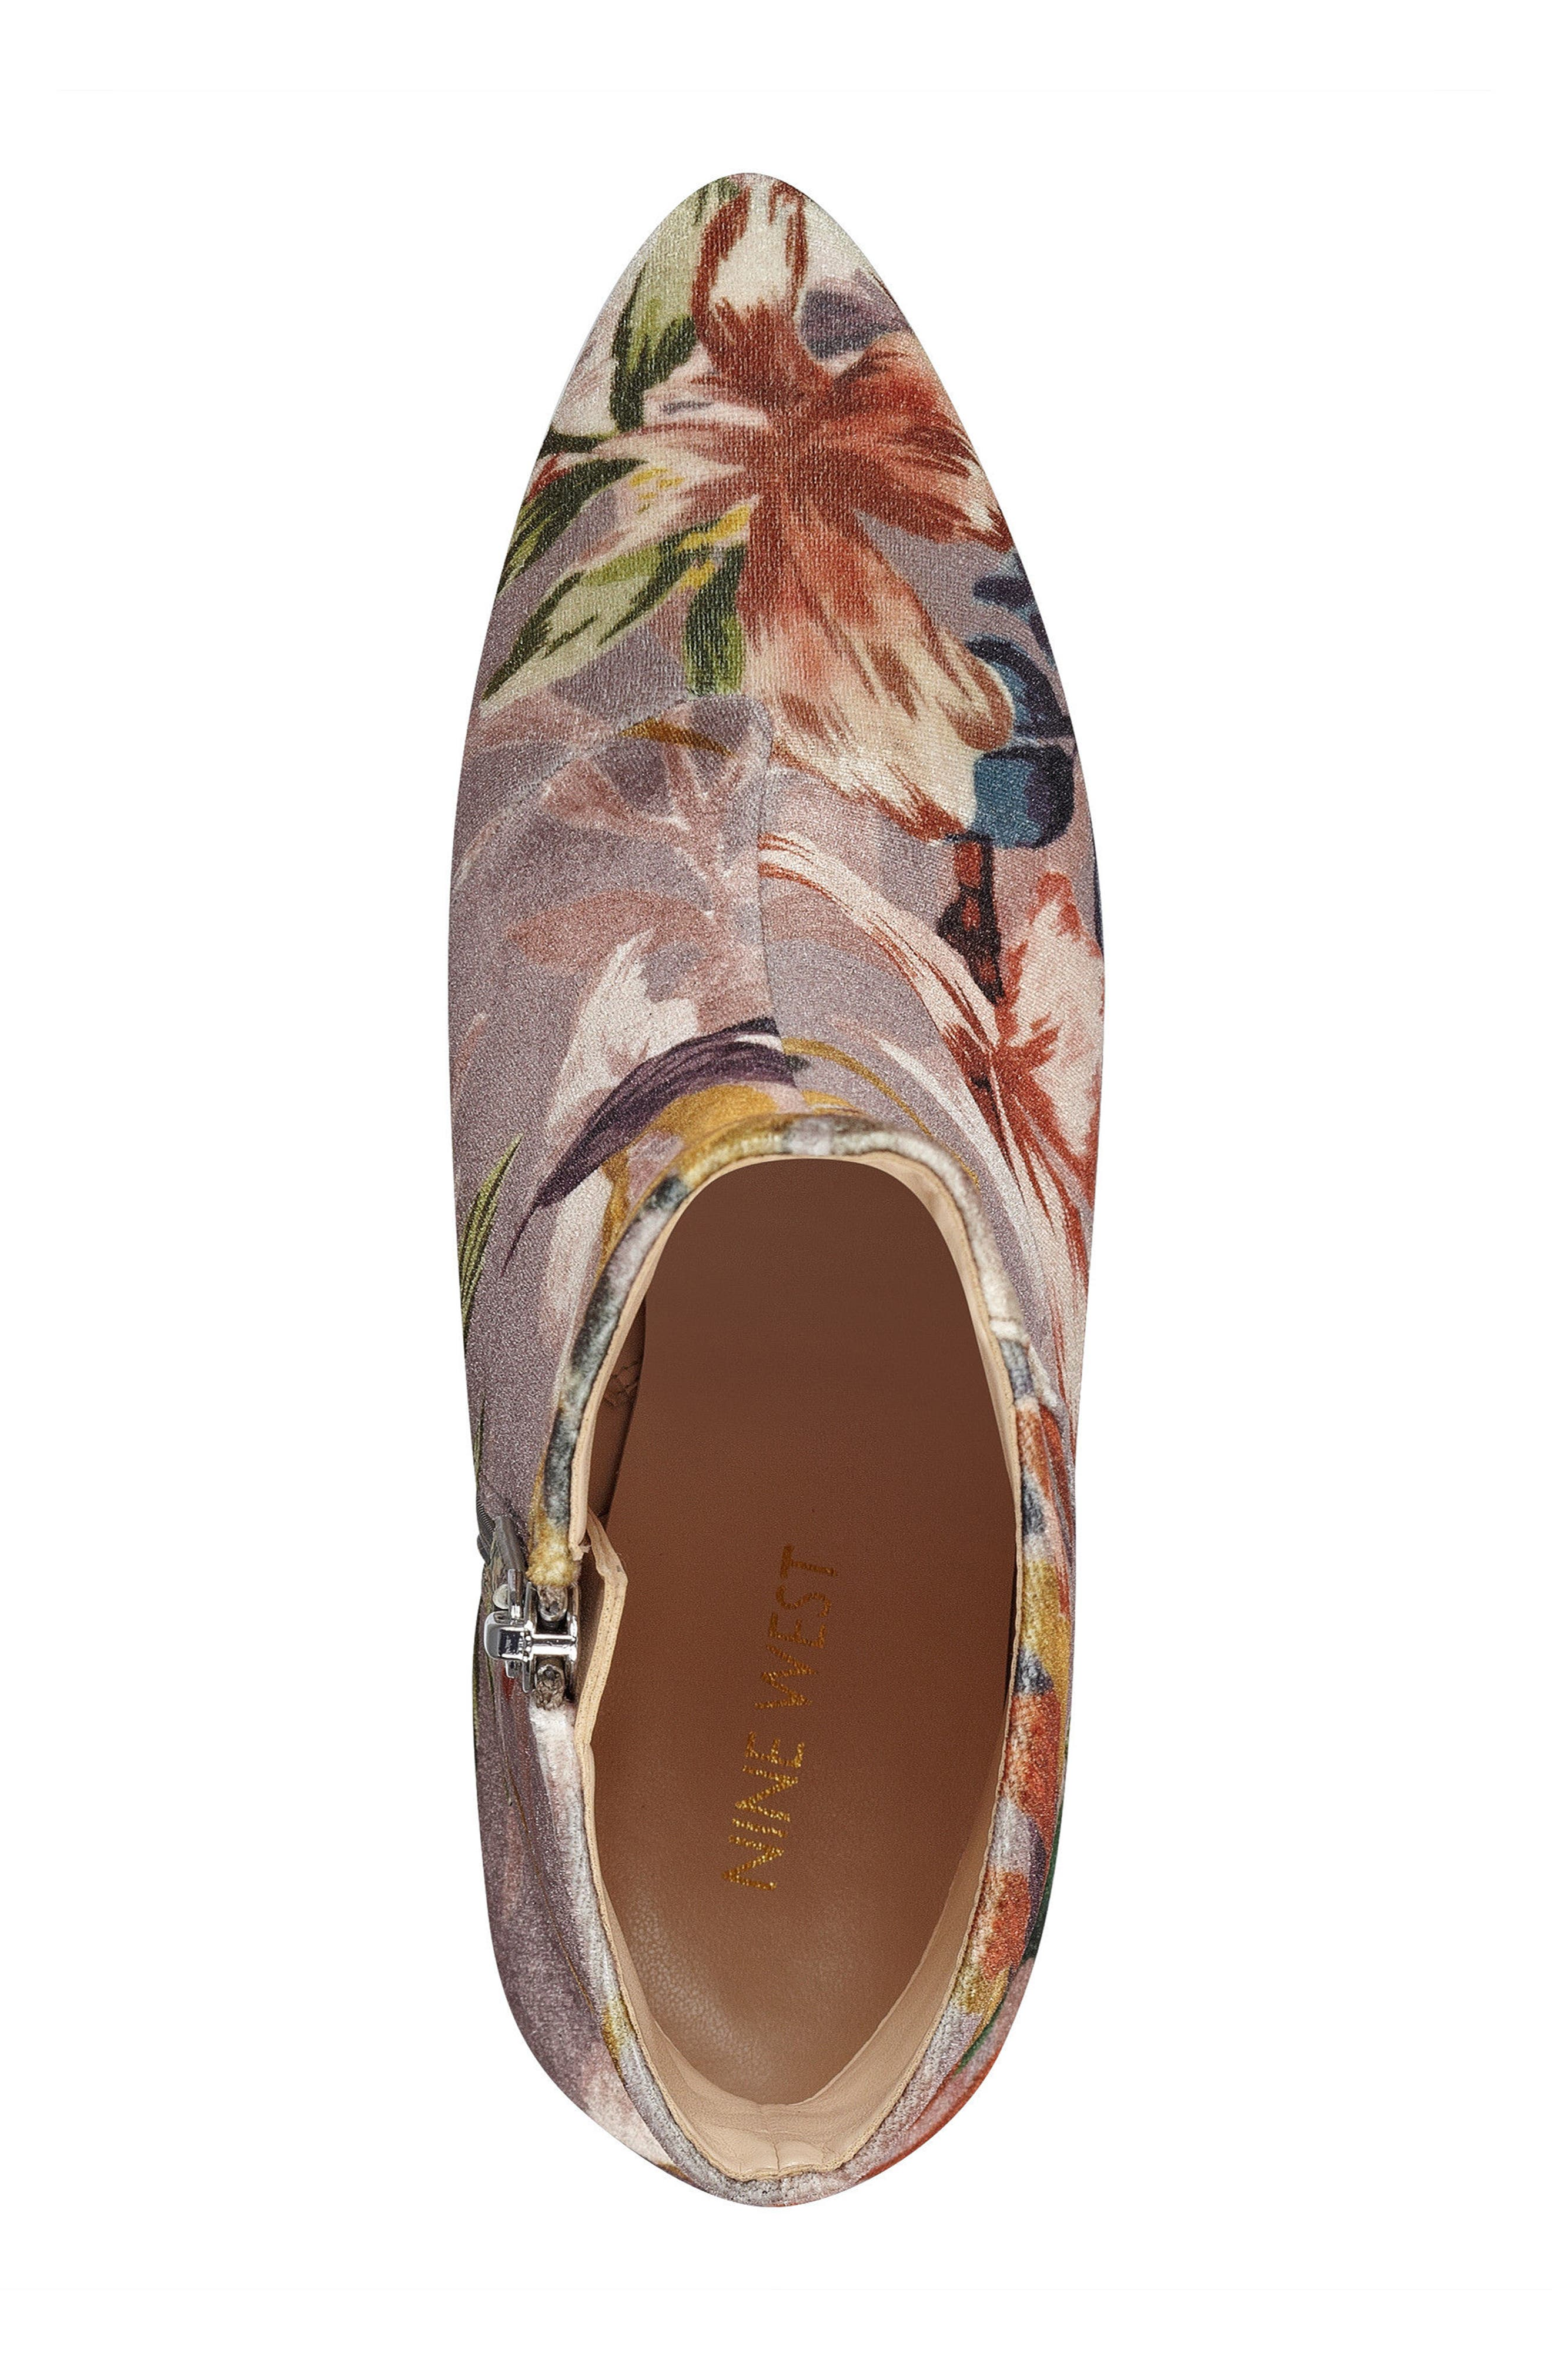 Savitra Pointy Toe Bootie,                             Alternate thumbnail 5, color,                             Taupe Multi Fabric